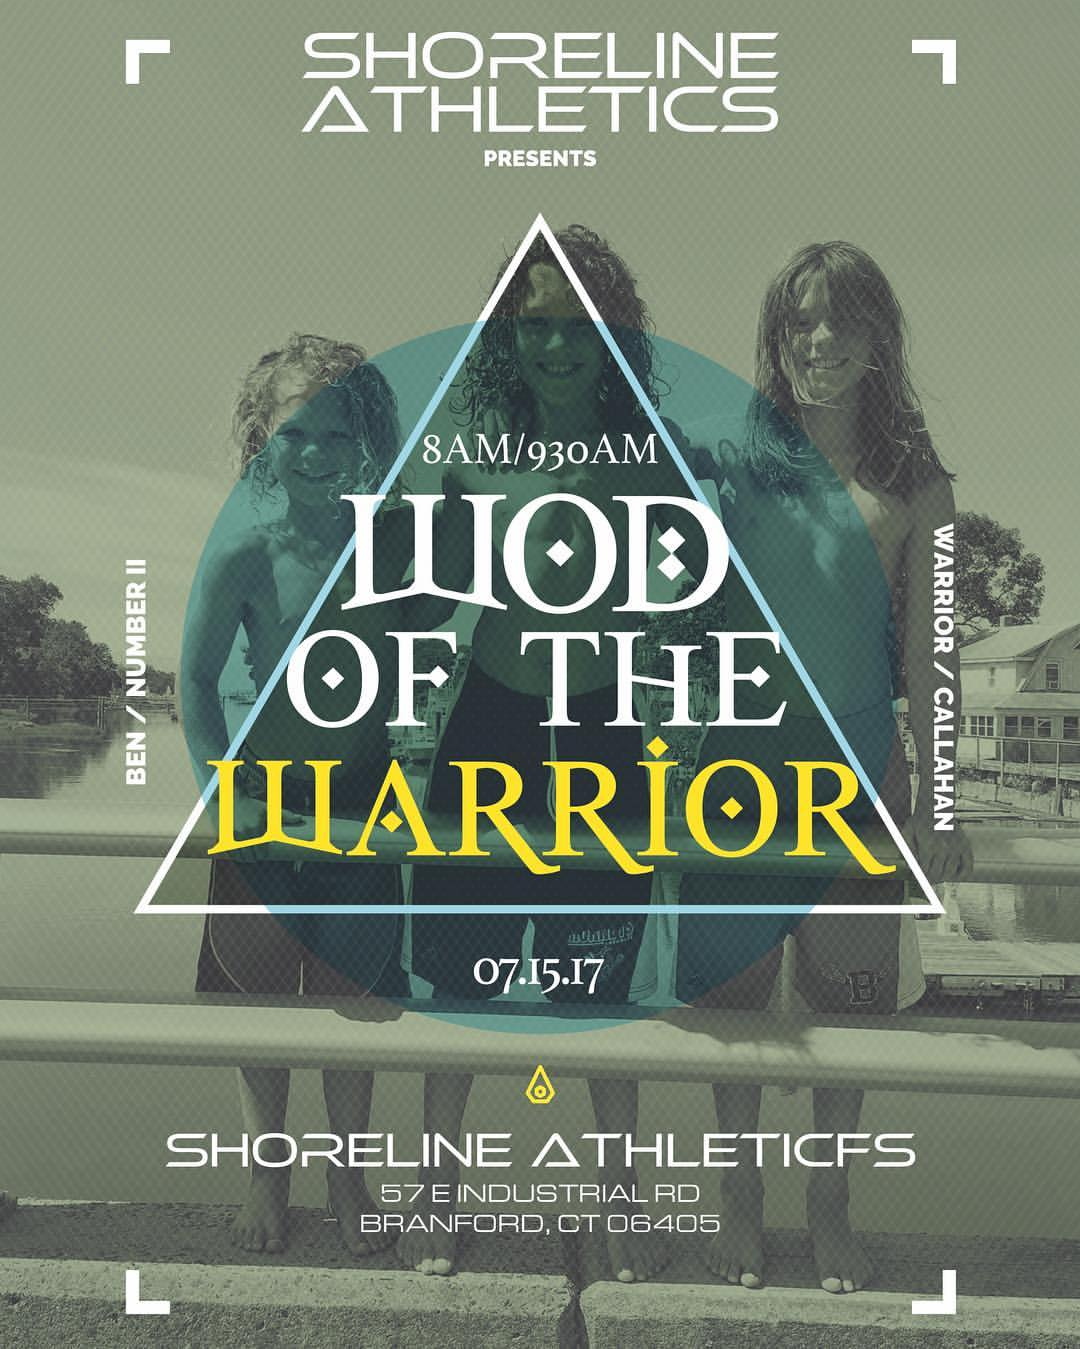 Elm City CrossFit will run the WOD for the Warrior!